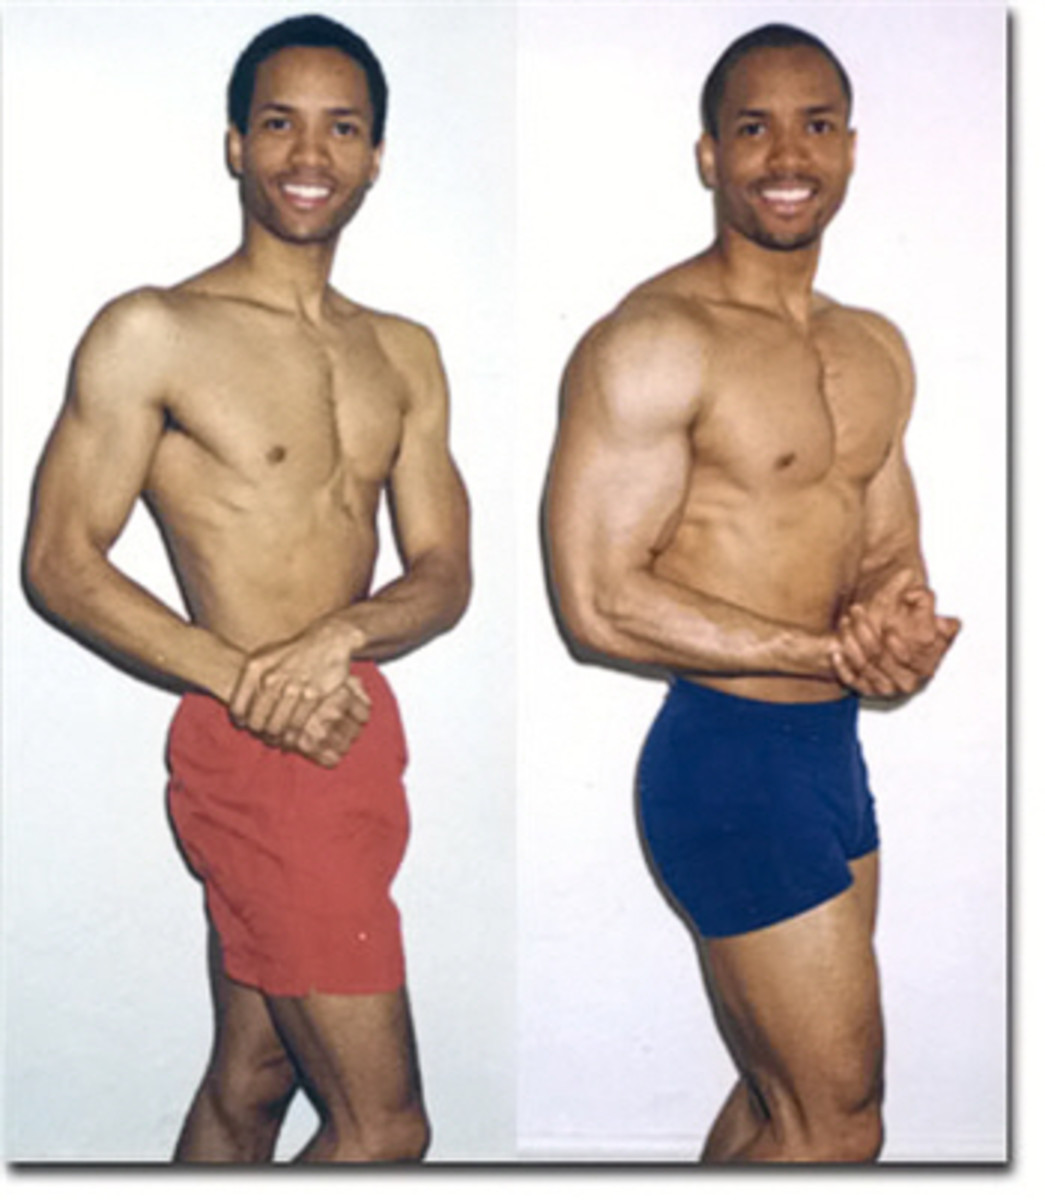 Do Fat People Build Muscle More Easily